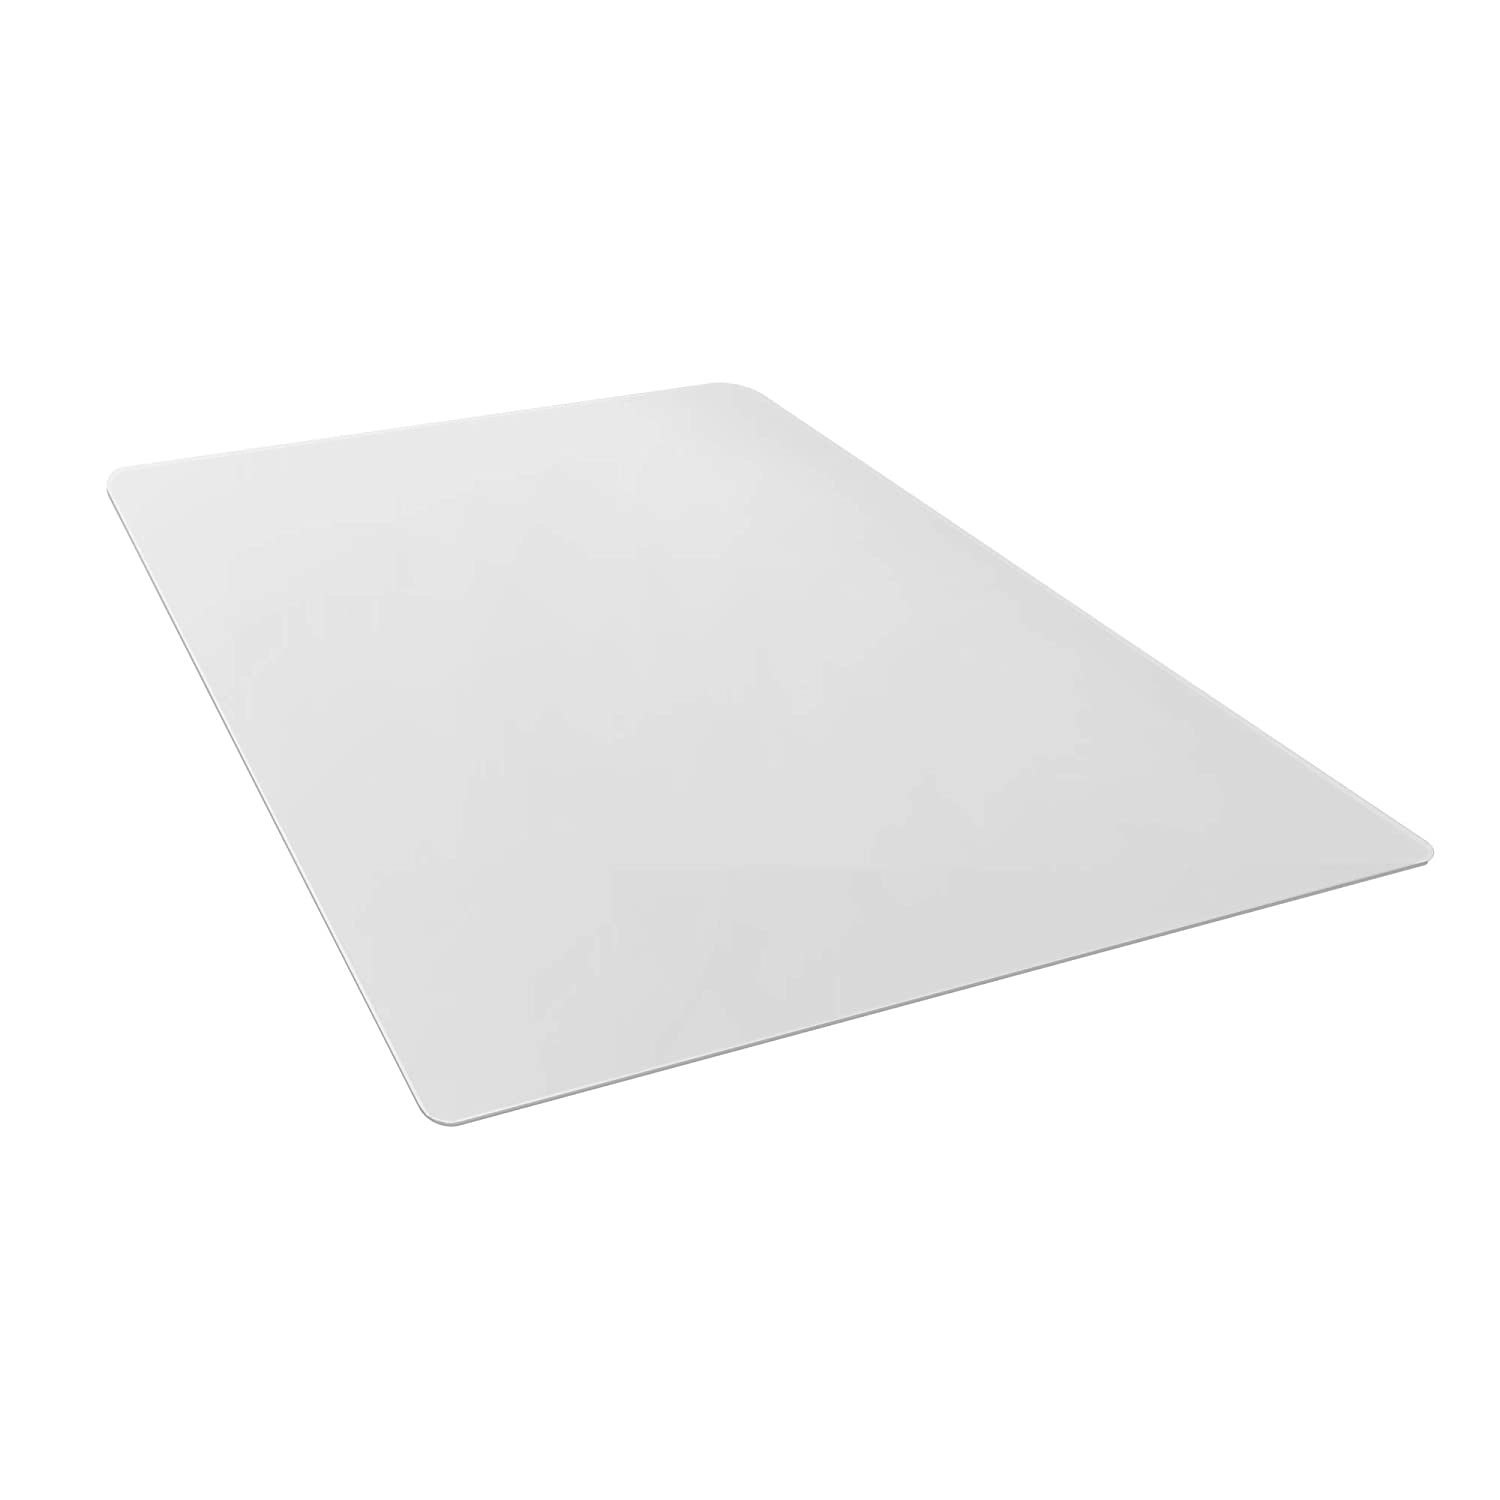 "AmazonBasics Polycarbonate Chair Mat for Hard Floors - 35"" x 47"""